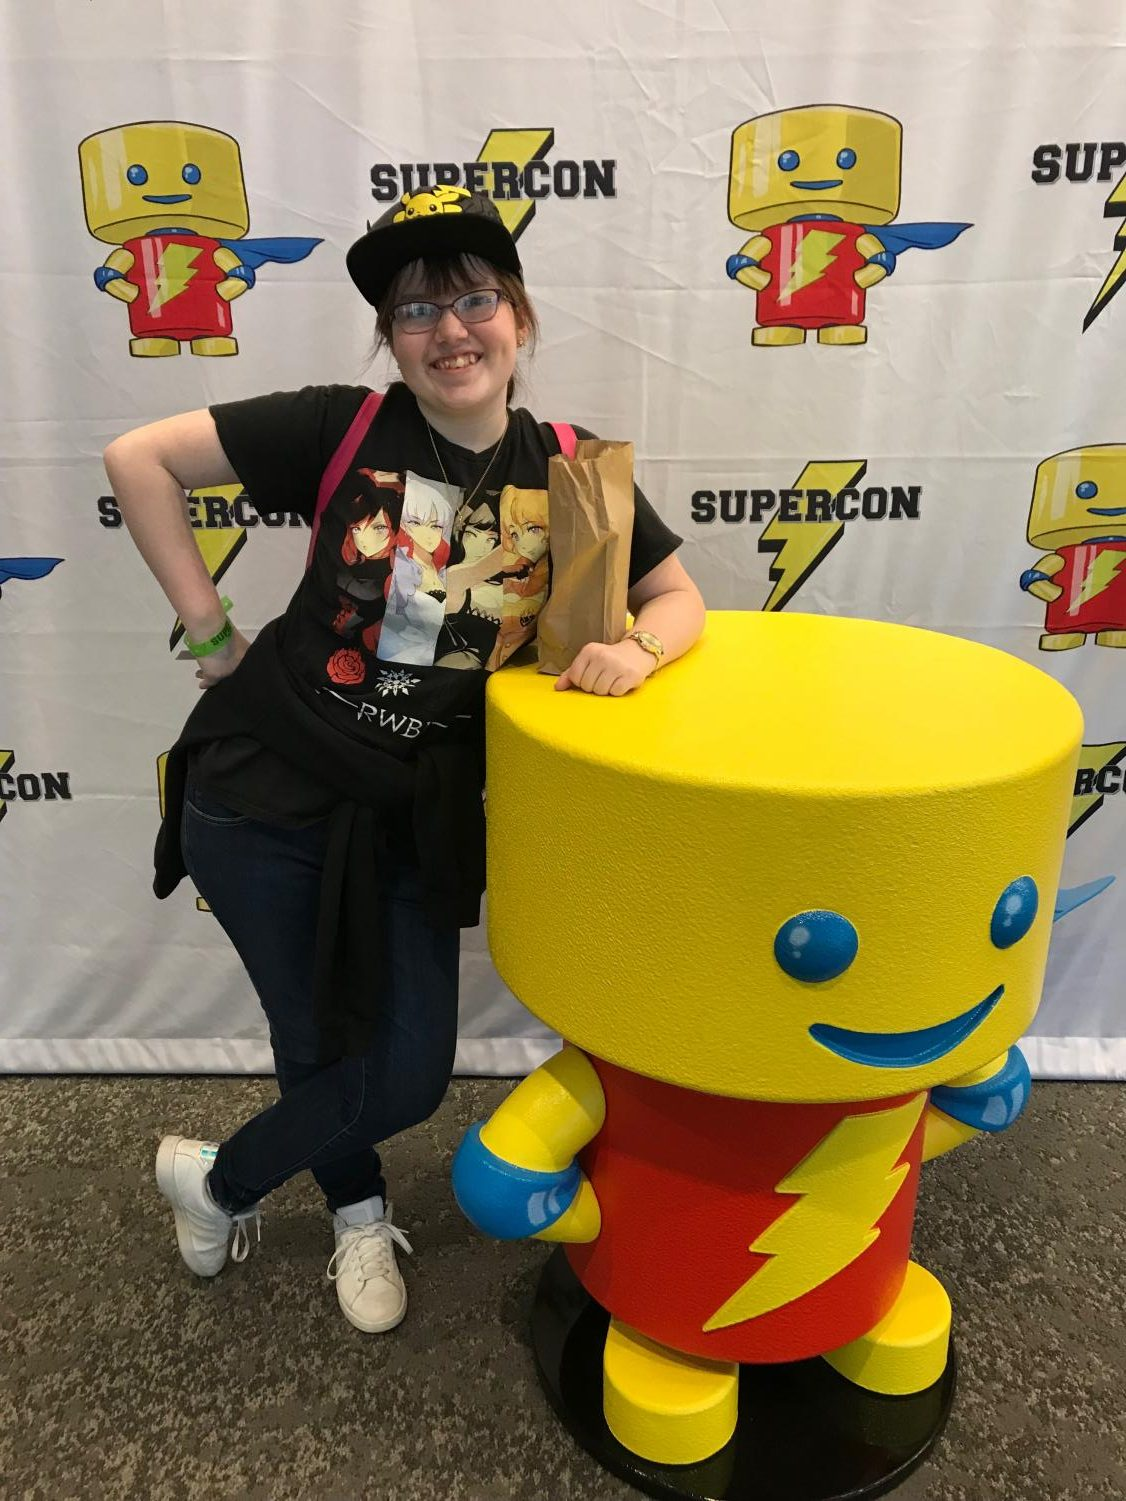 On the way out, I catch a picture with the Louisville Supercon mascot. I can't wait to go again!